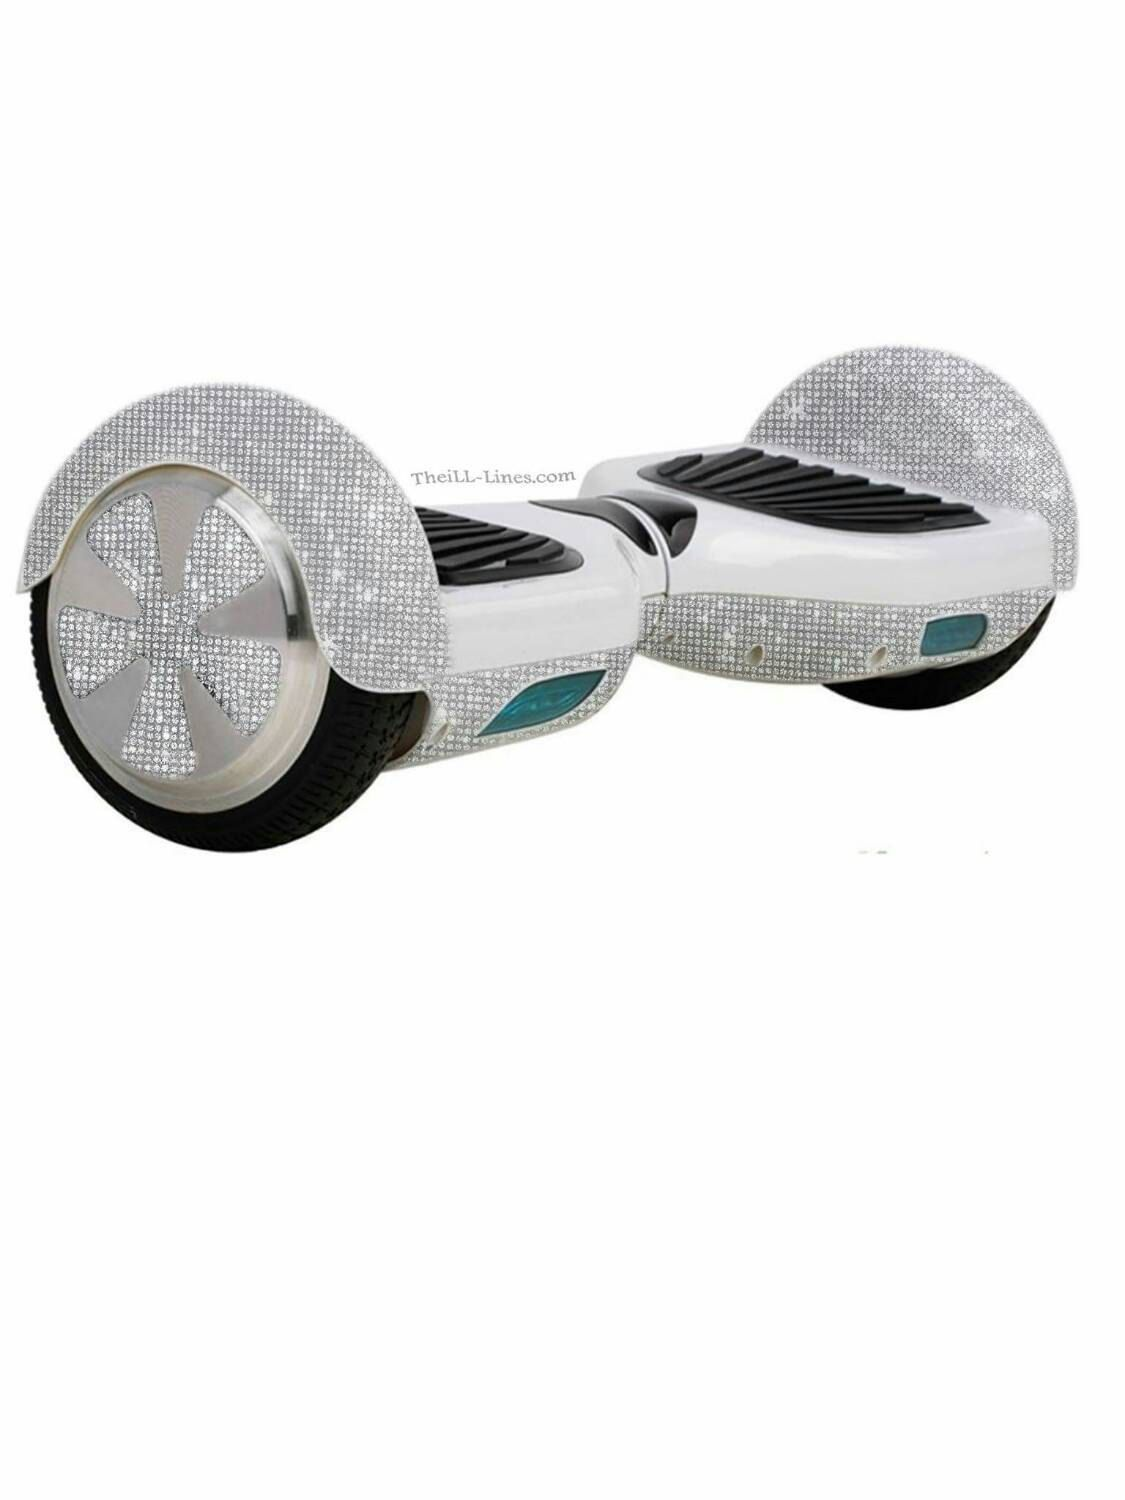 Custom Segway Crystal Segway Bedazzled Segway White Hover Board